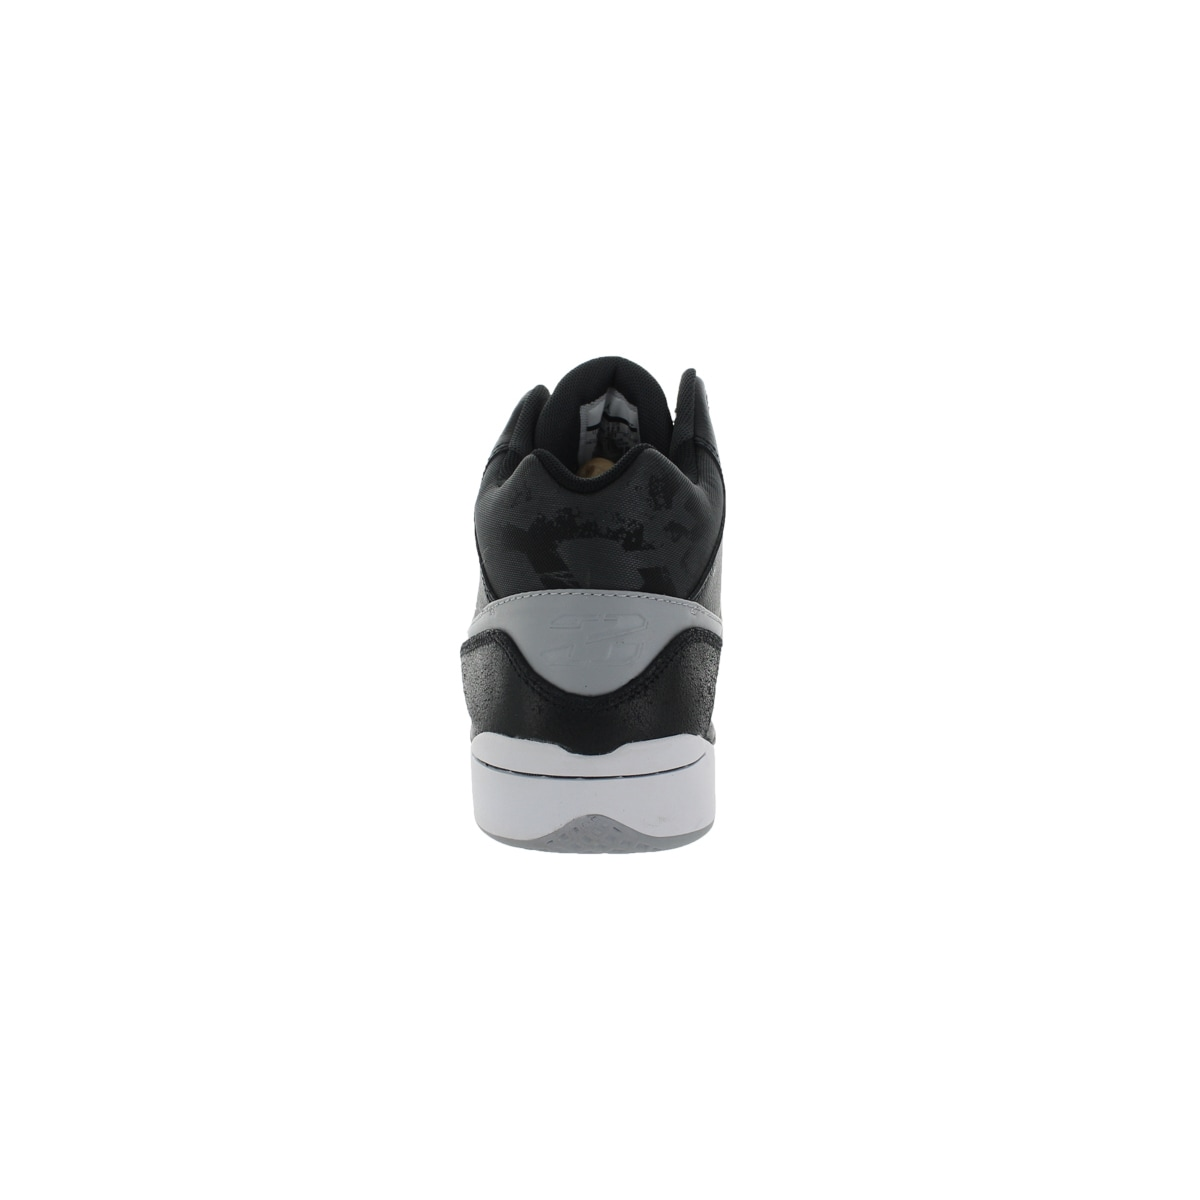 4fa7bec7ba6d4a real jordan air jordan trek products 2dff9 faad6  norway shop nike jordan  mens jordan phase 23 classic anthracite white black wlf basketball shoe free